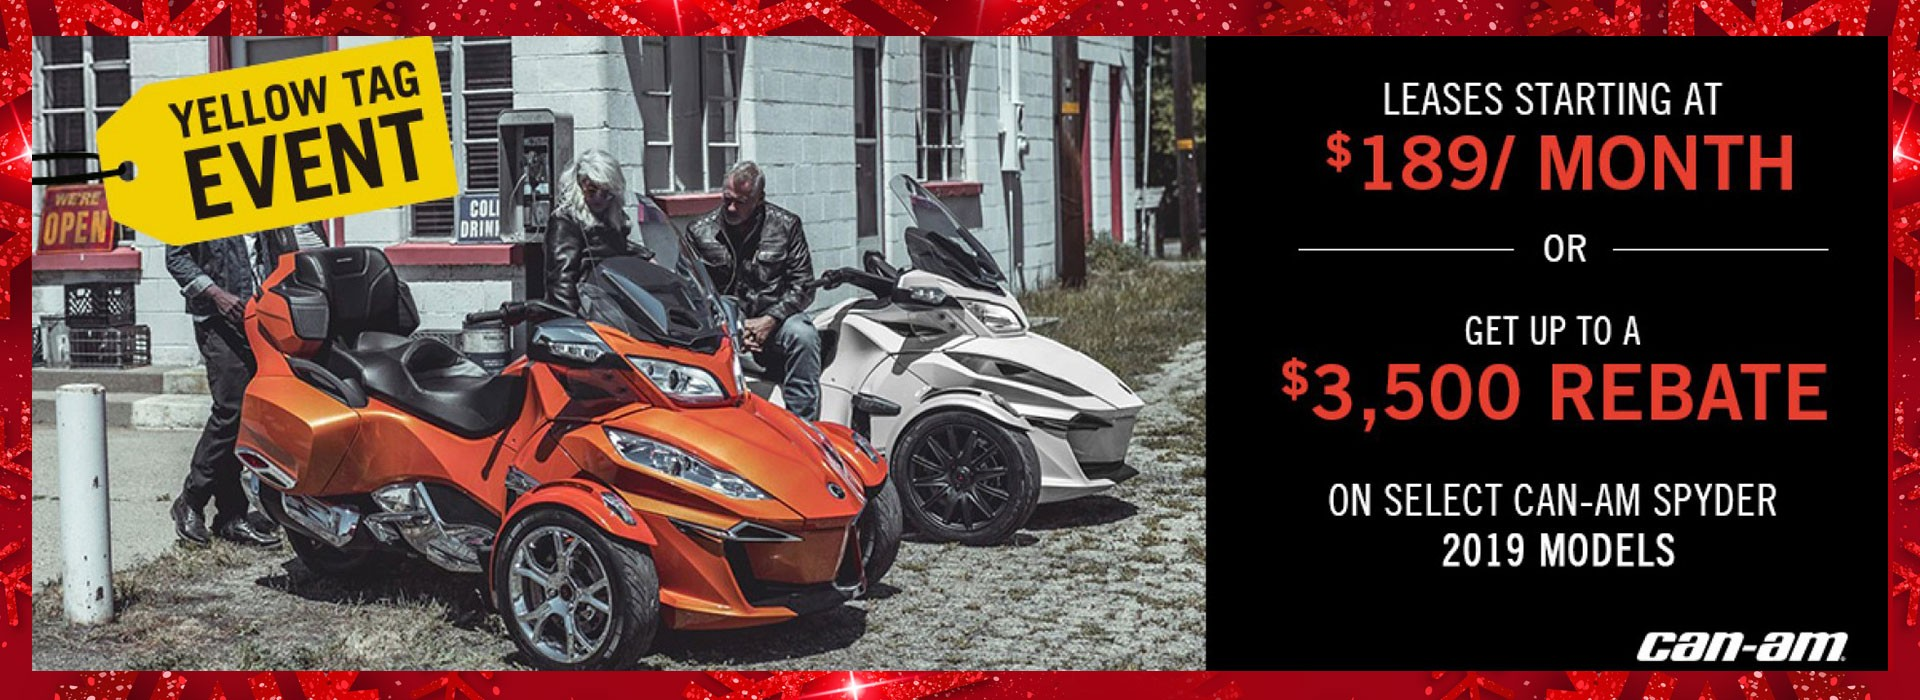 Yellow Tag Event - Can-am Spyder 2019 Models